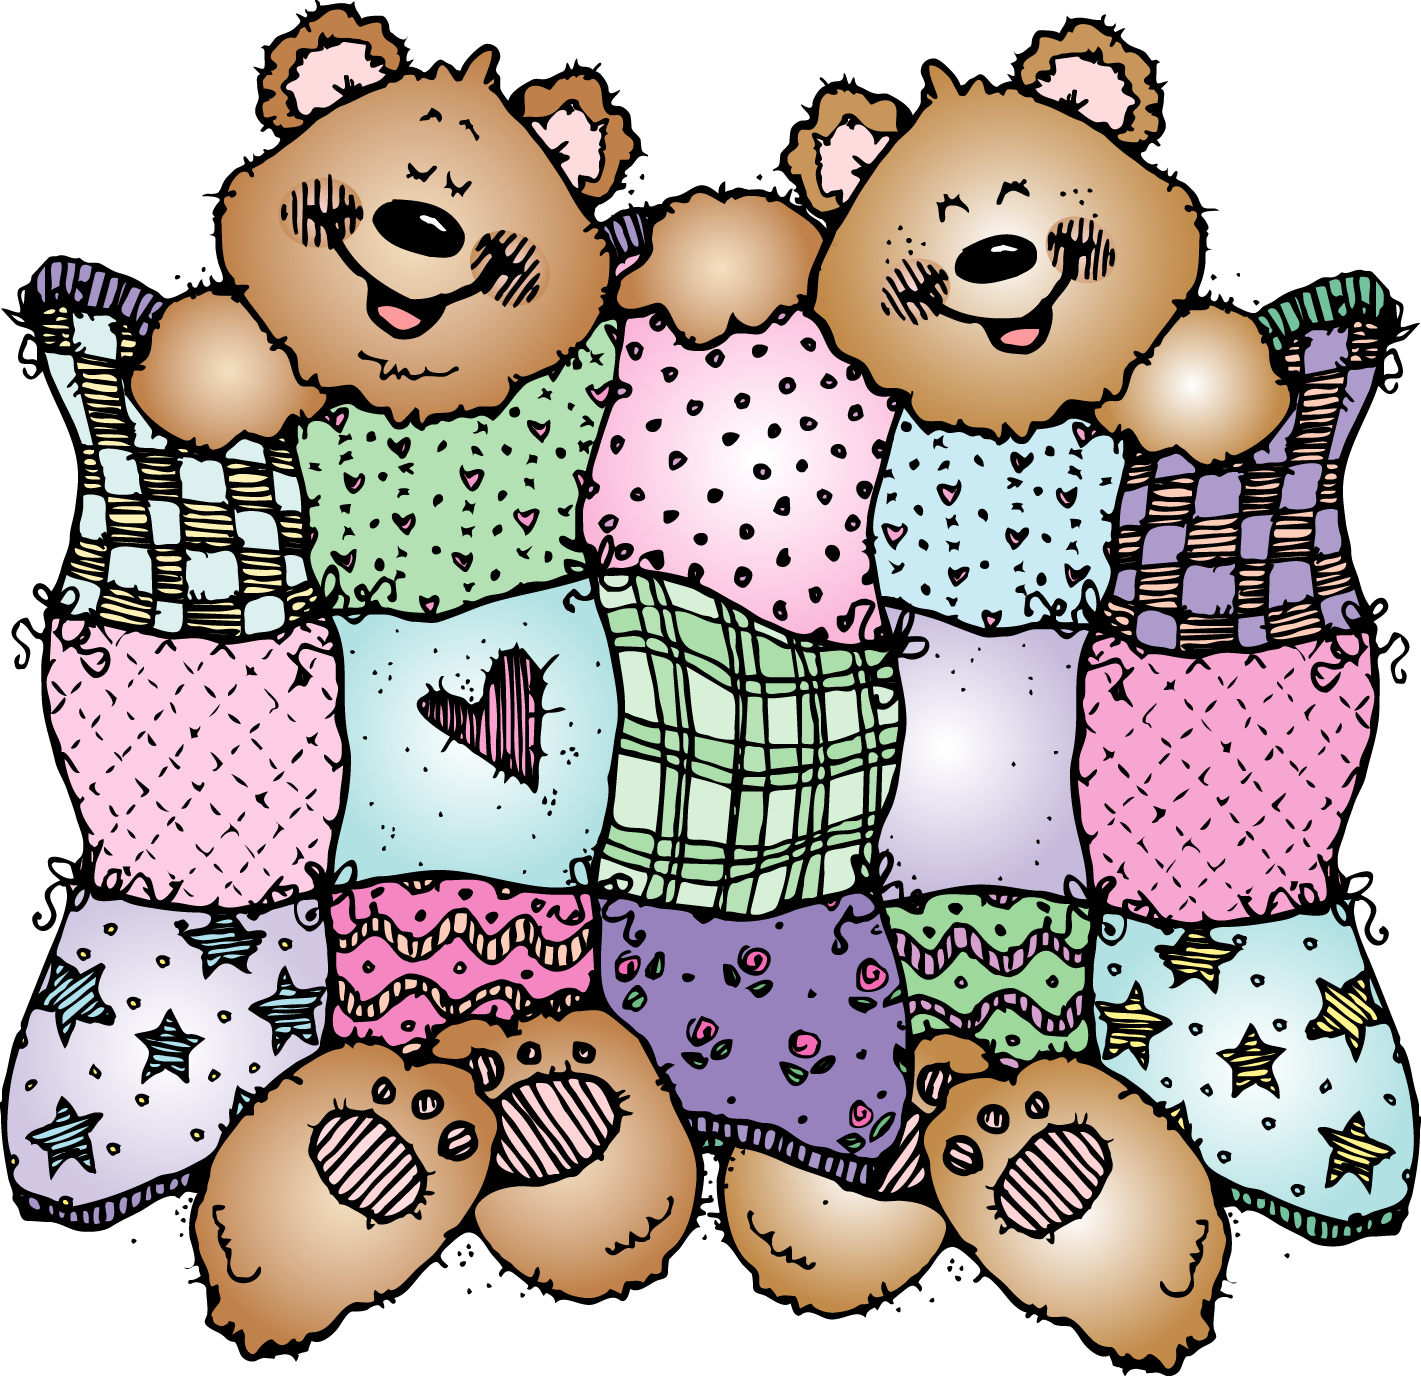 Sleepover clipart free images 3